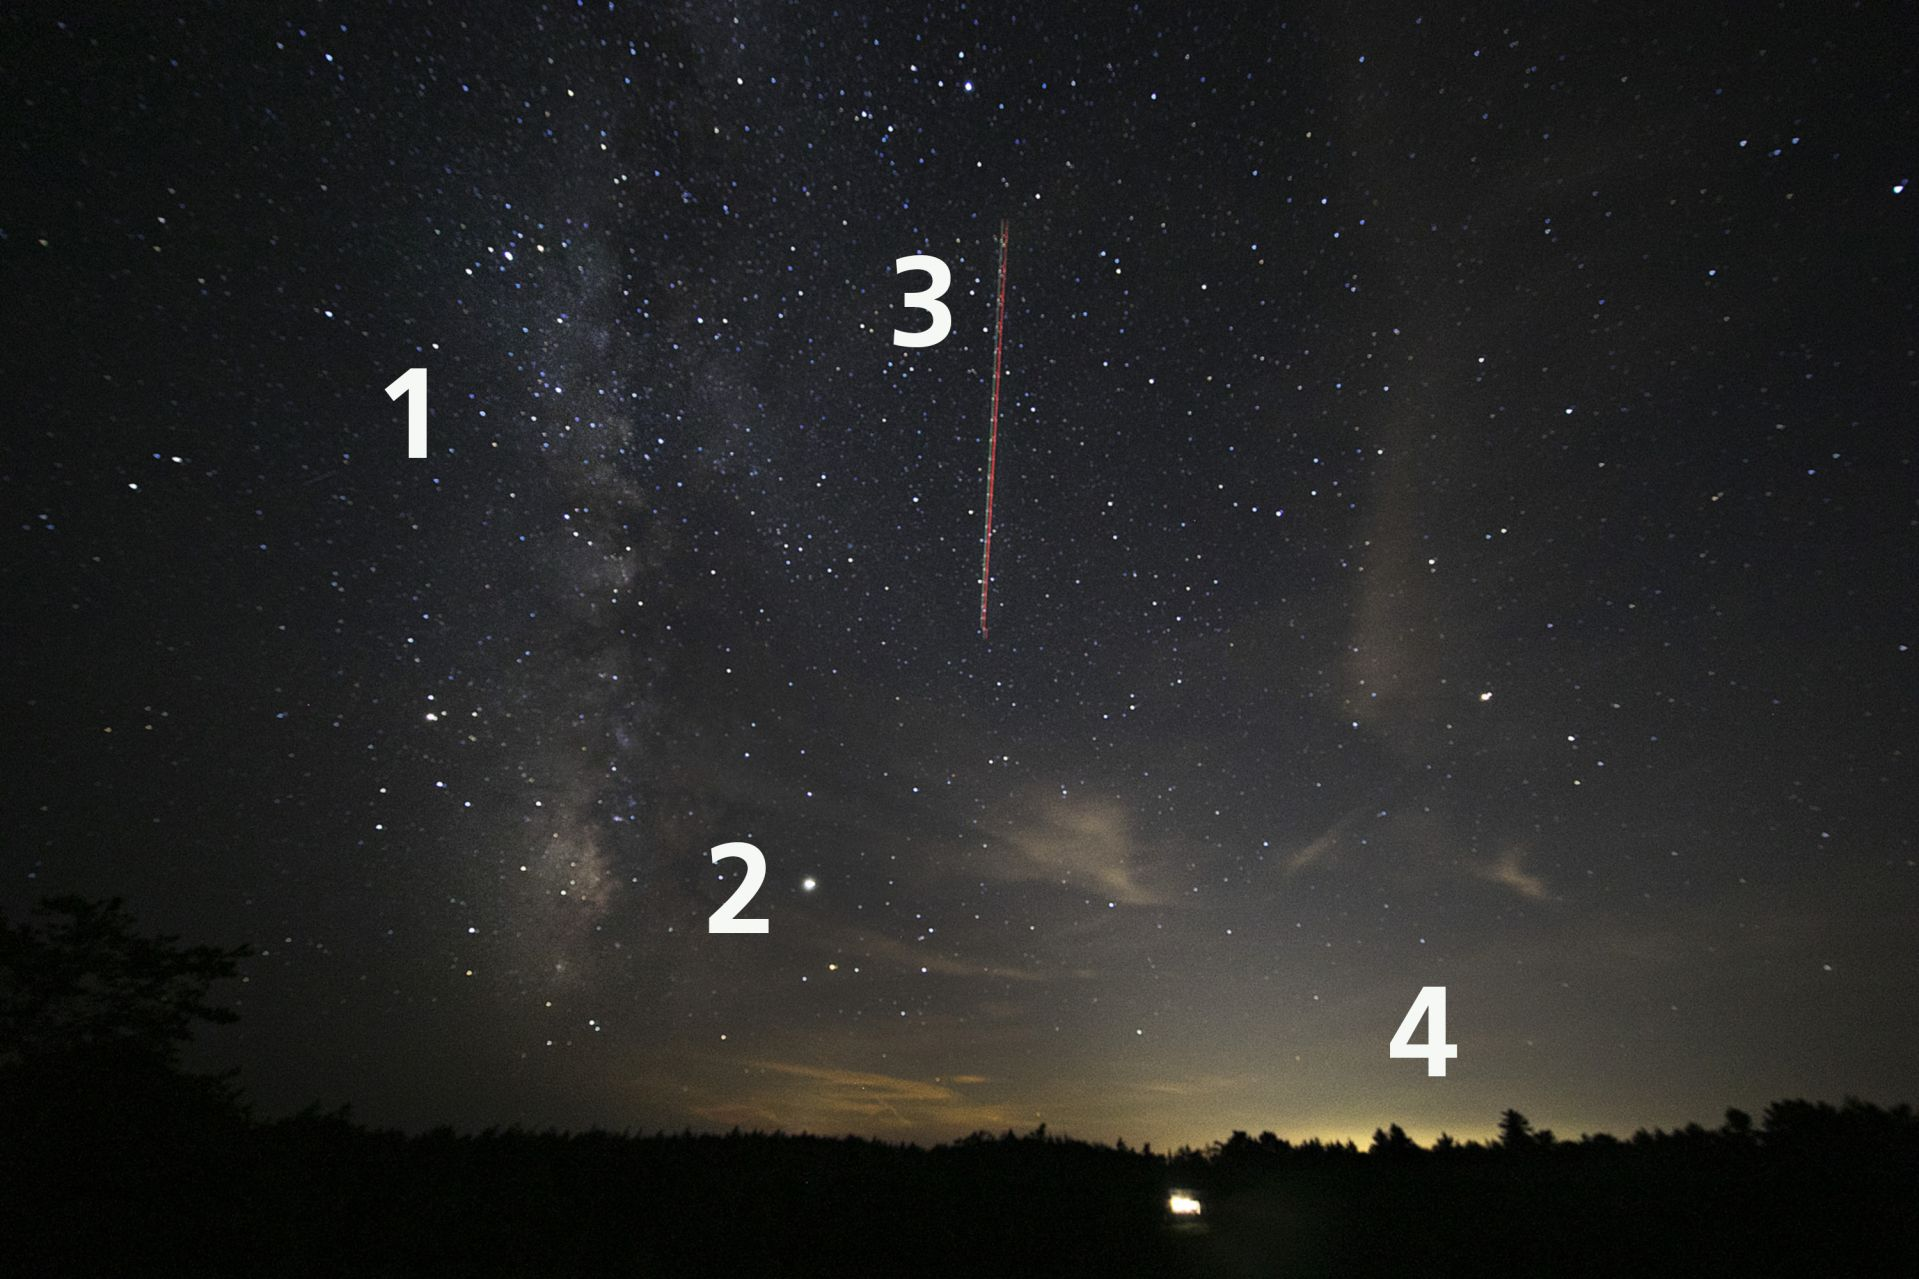 Four items In the night sky above the Coastal Center at Shortidge: (1) is the Milky Way, (2) is Jupiter, (3) is the trail of a passenger jet with red dots indicating its flashing beacon, and (4) is light from the city of Portland, made prominent by the long image exposure. (Theophil Syslo/Bates College)